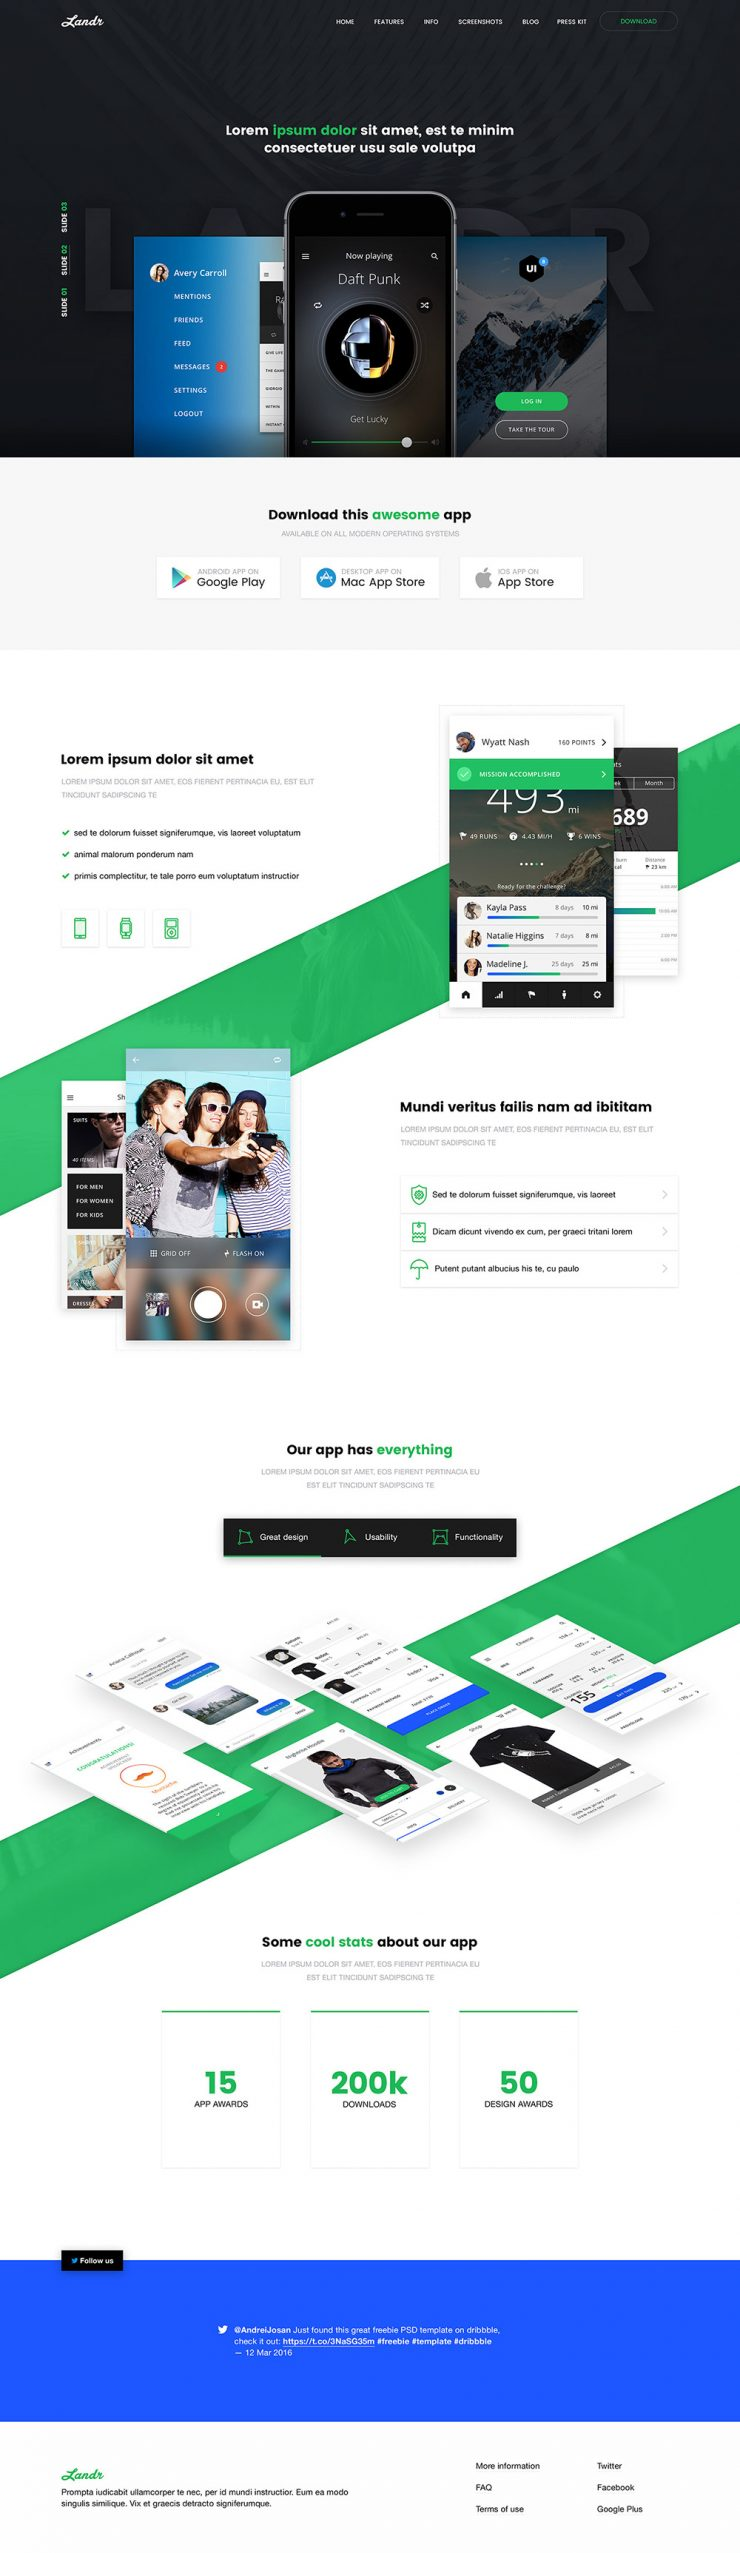 Mobile Application Landing Page Free PSD Template